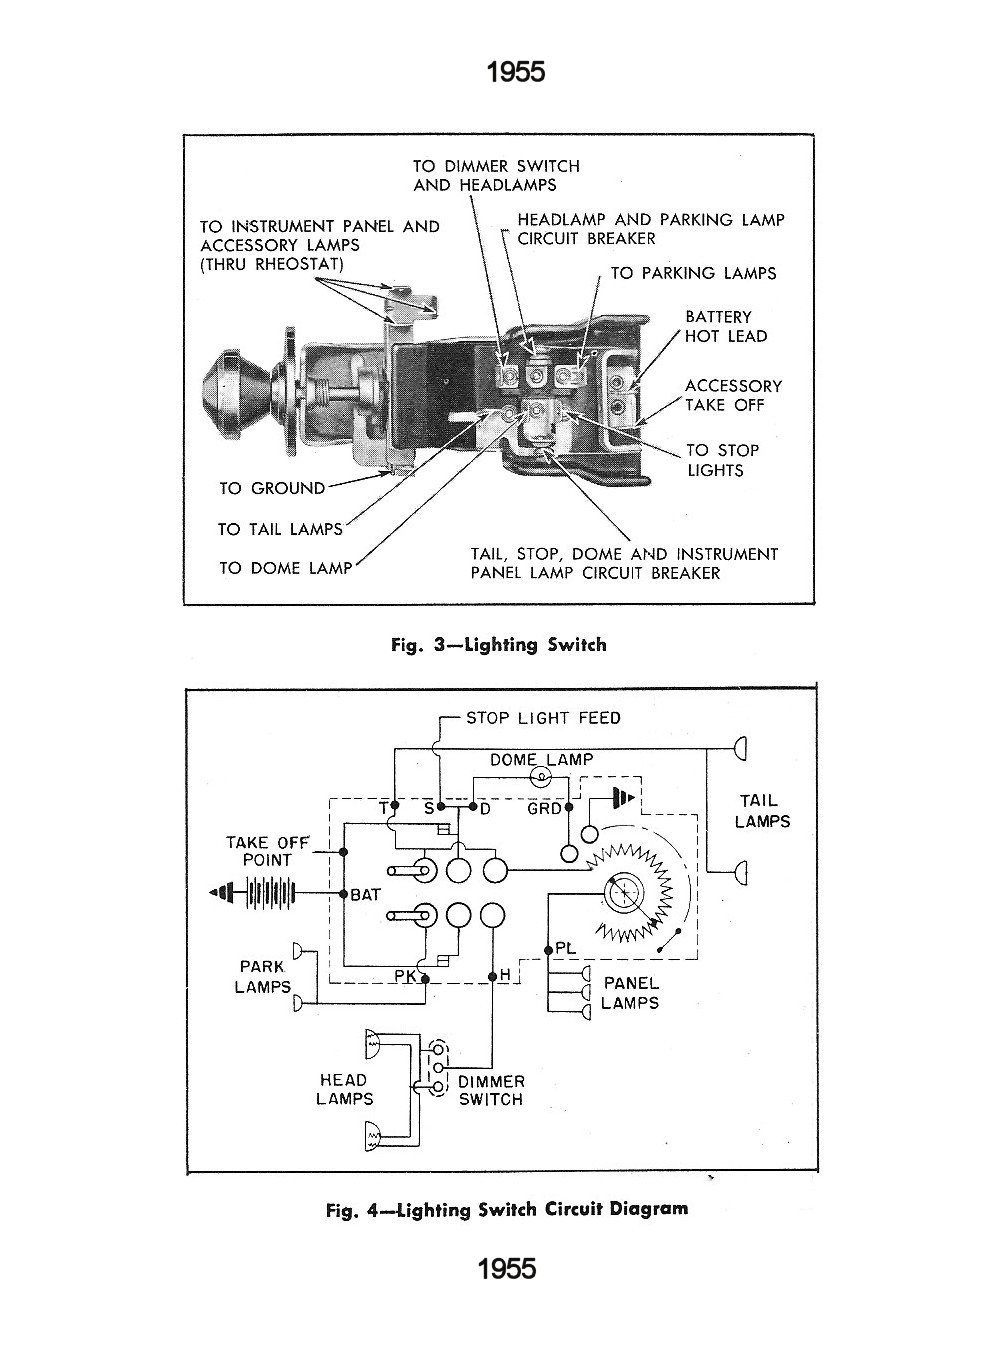 1969 gm ignition switch wiring wiring diagram1955 chevy ignition switch wiring wiring diagram detailed1959 chevy truck wiring diagram wiring diagram detailed 55